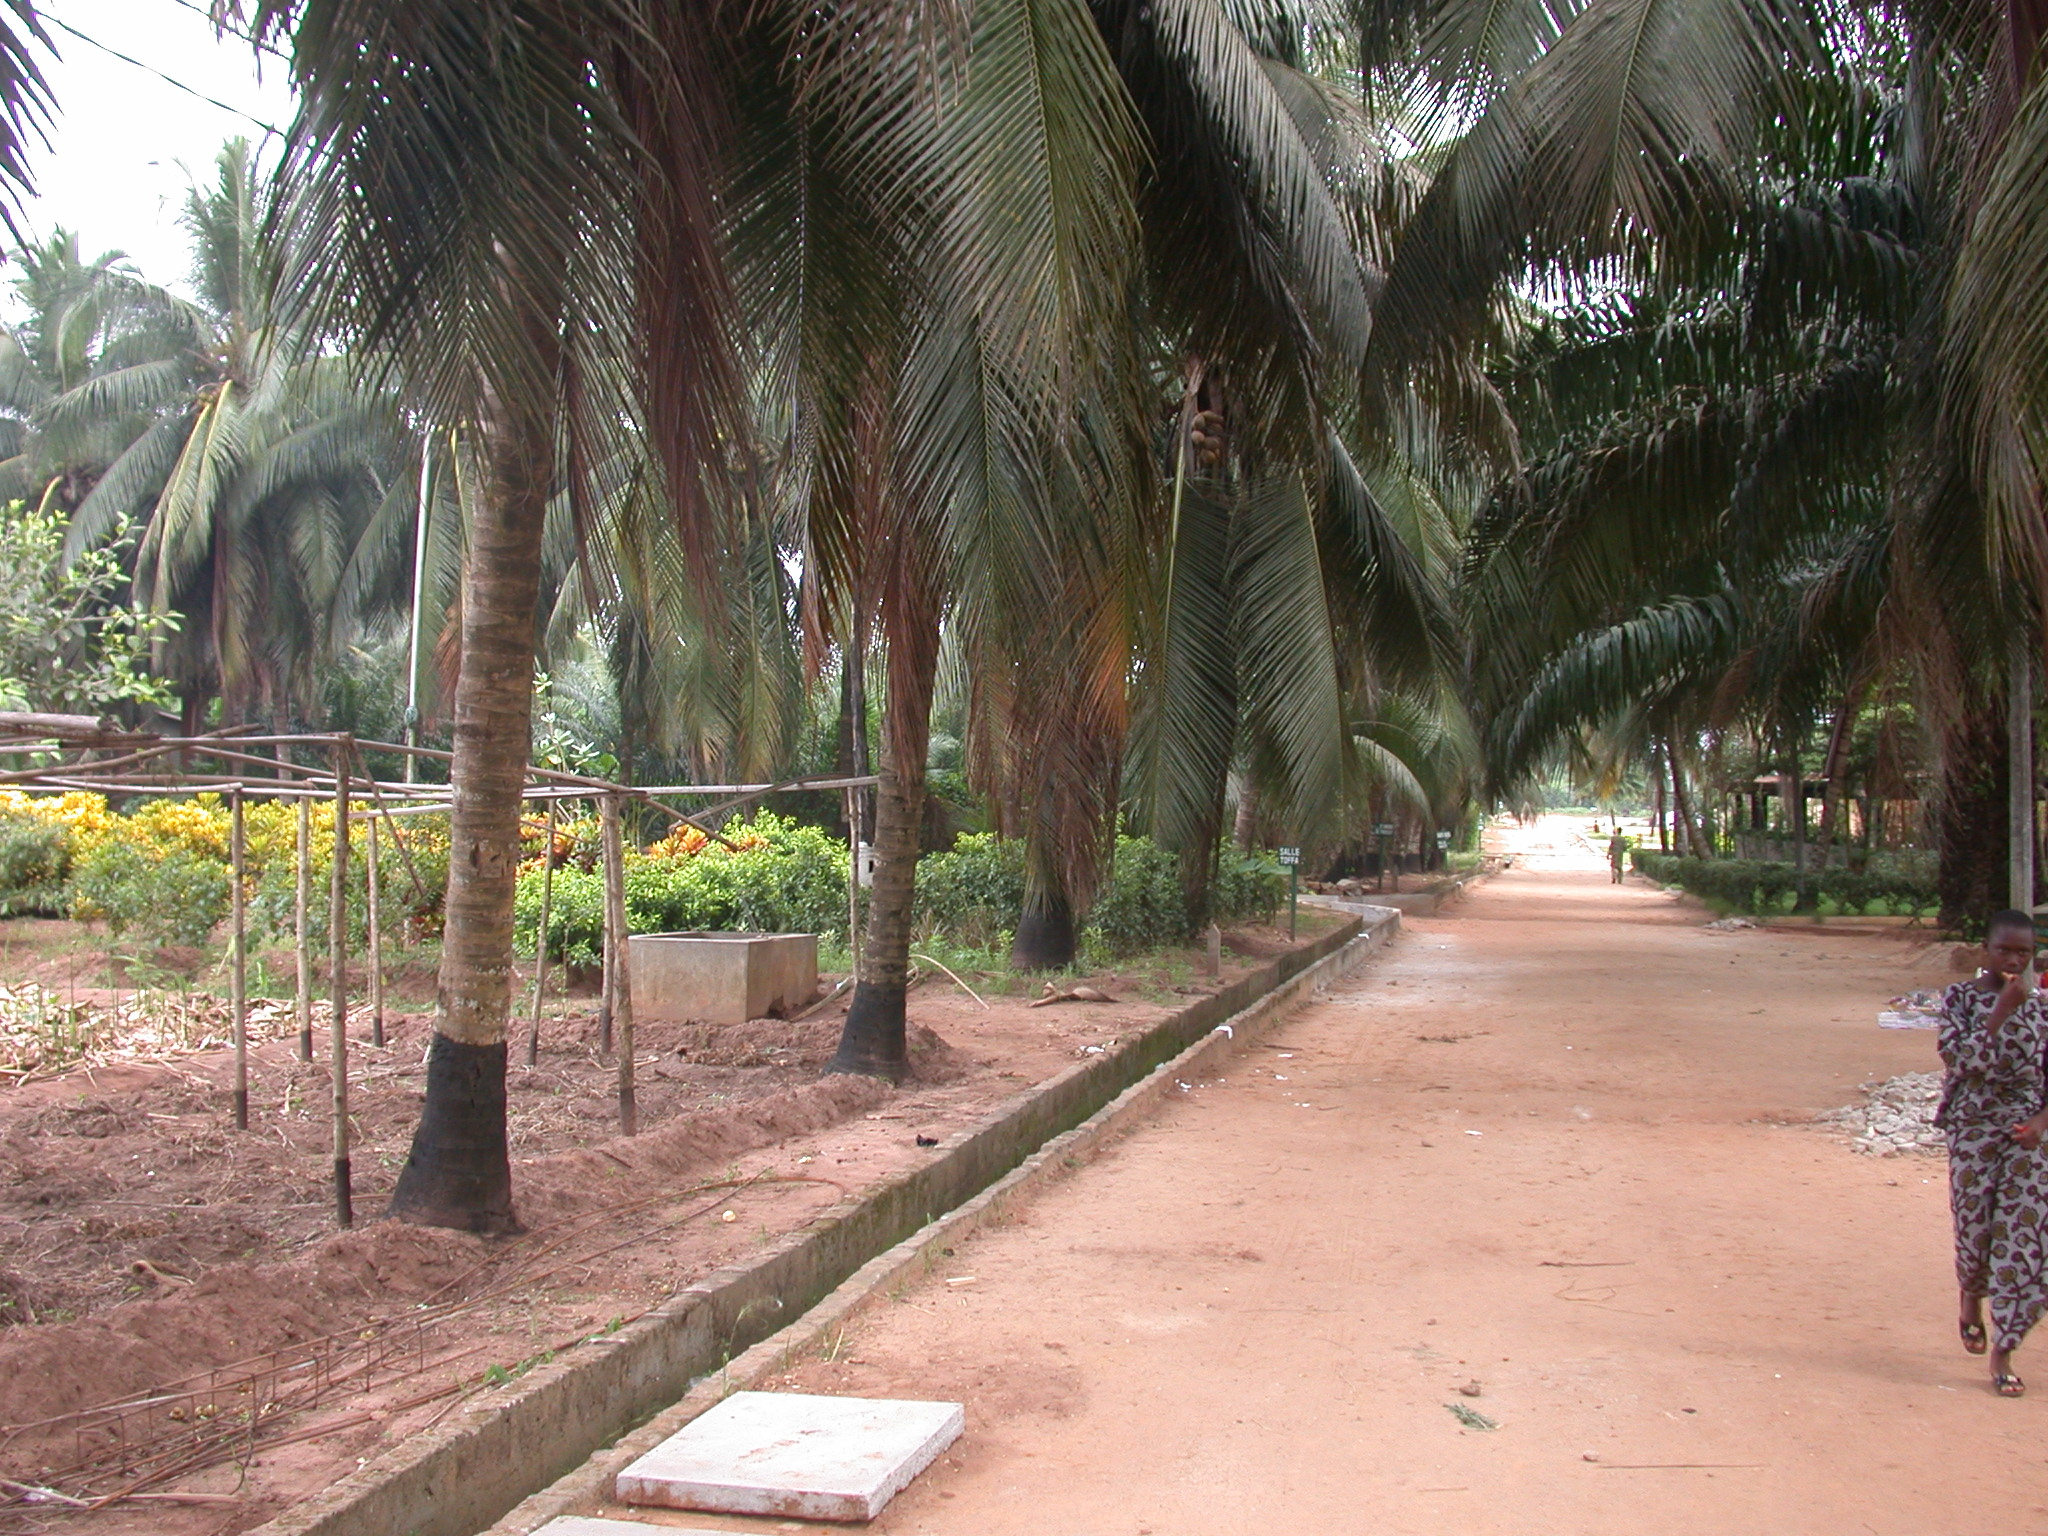 Grounds of Centre Songhaï, Porto Novo, Benin